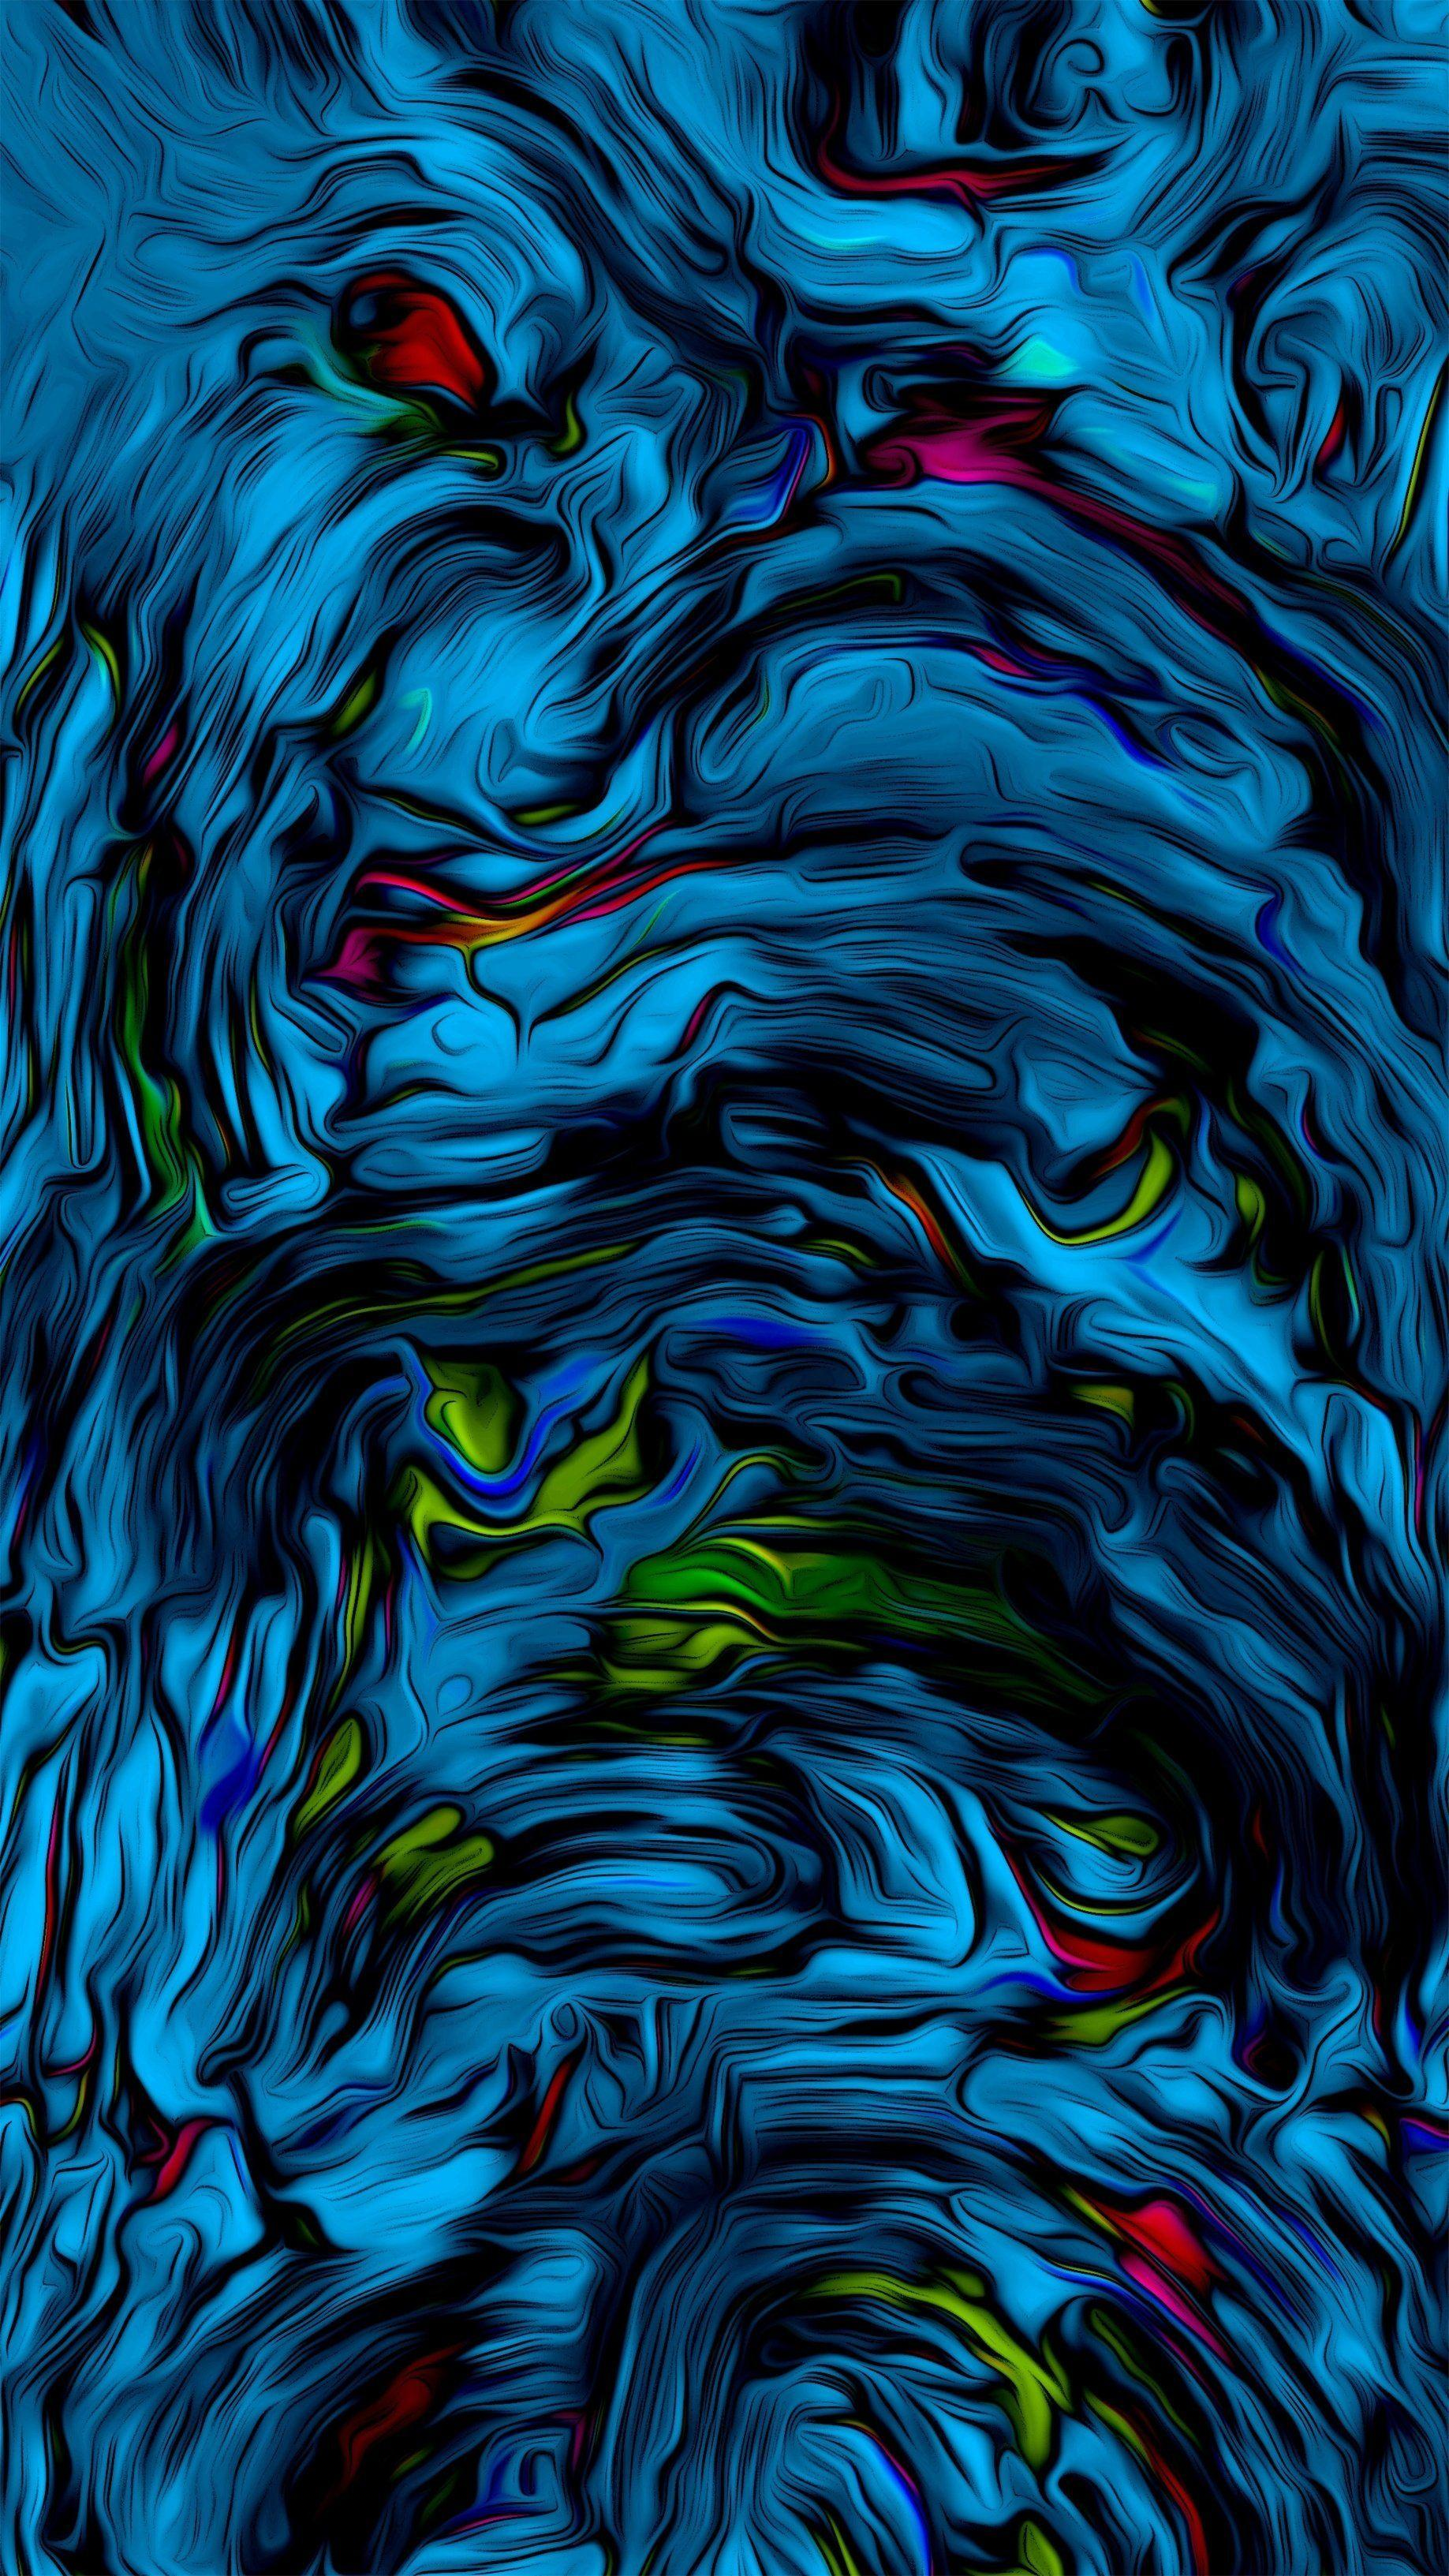 4k Abstract Phone Wallpapers - Wallpaper Cave